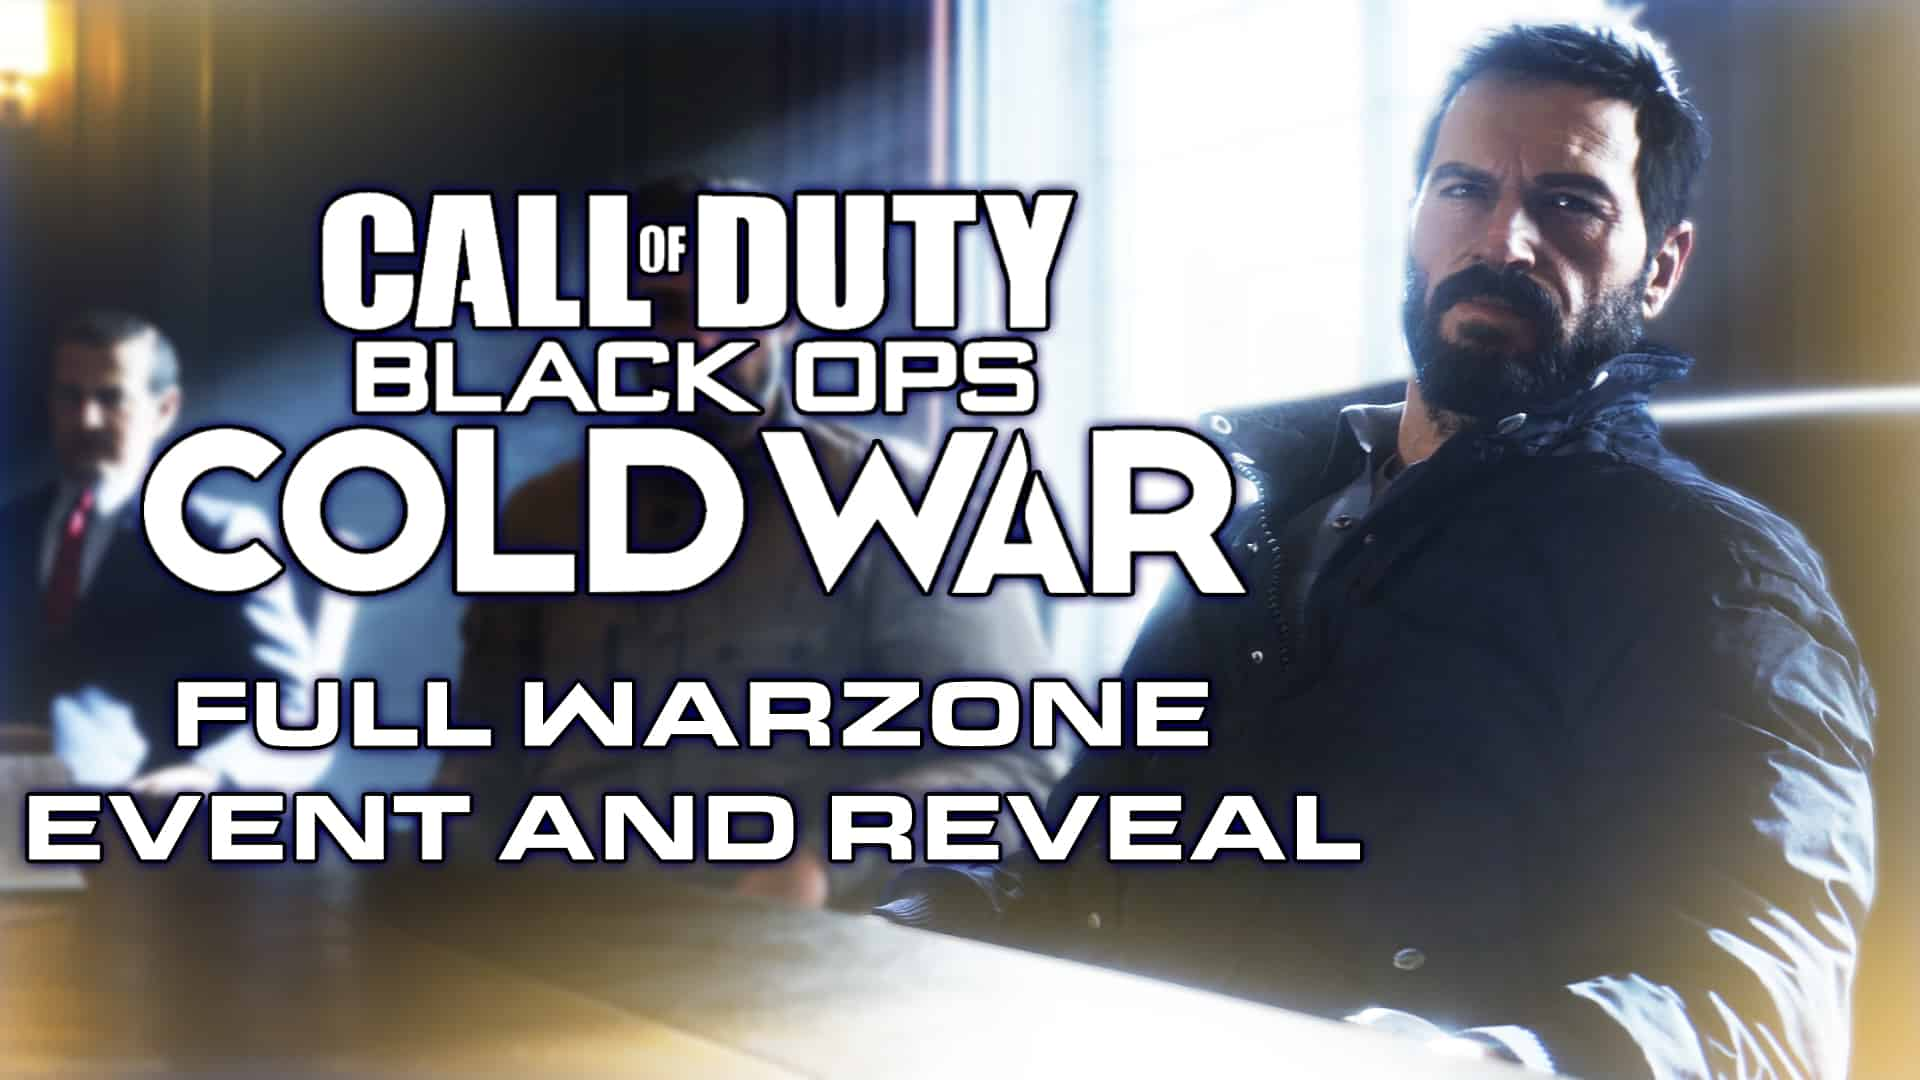 Call Of Duty Black Ops Cold War Reveal Full Warzone Live Event Details Warzone Downsights